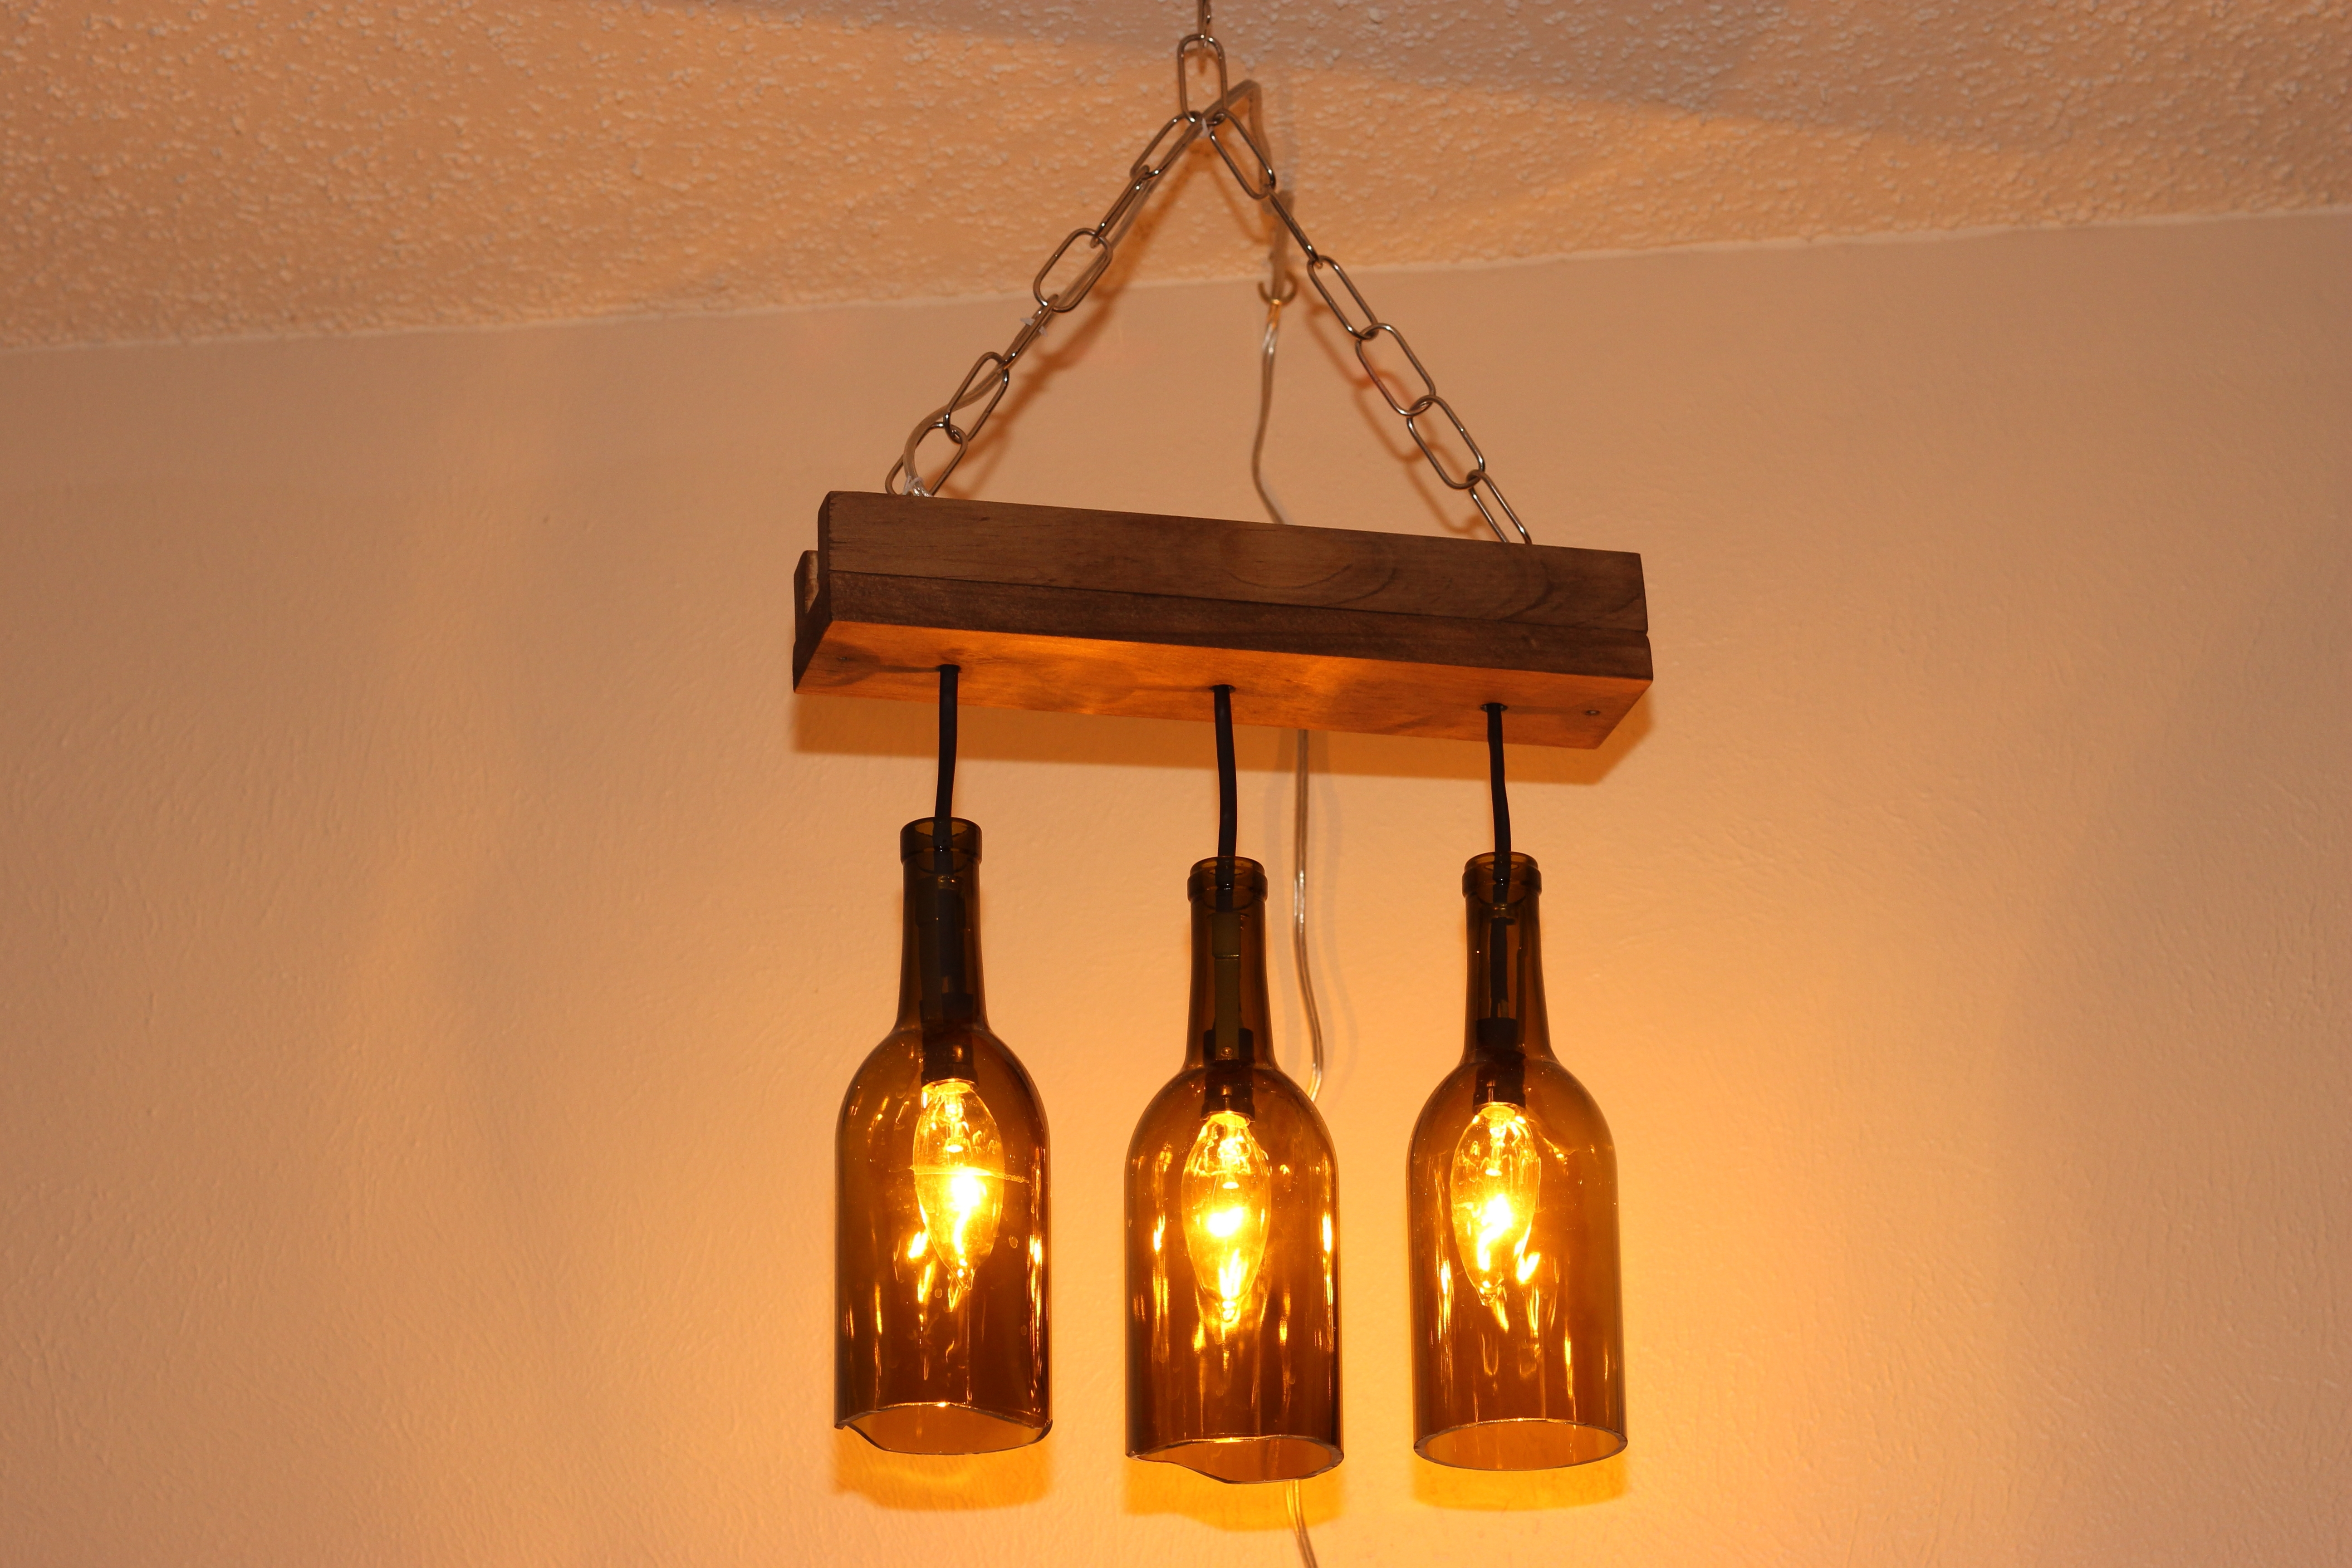 Making Outdoor Hanging Lights From Wine Bottles With Regard To Latest Wine Bottle (View 18 of 20)